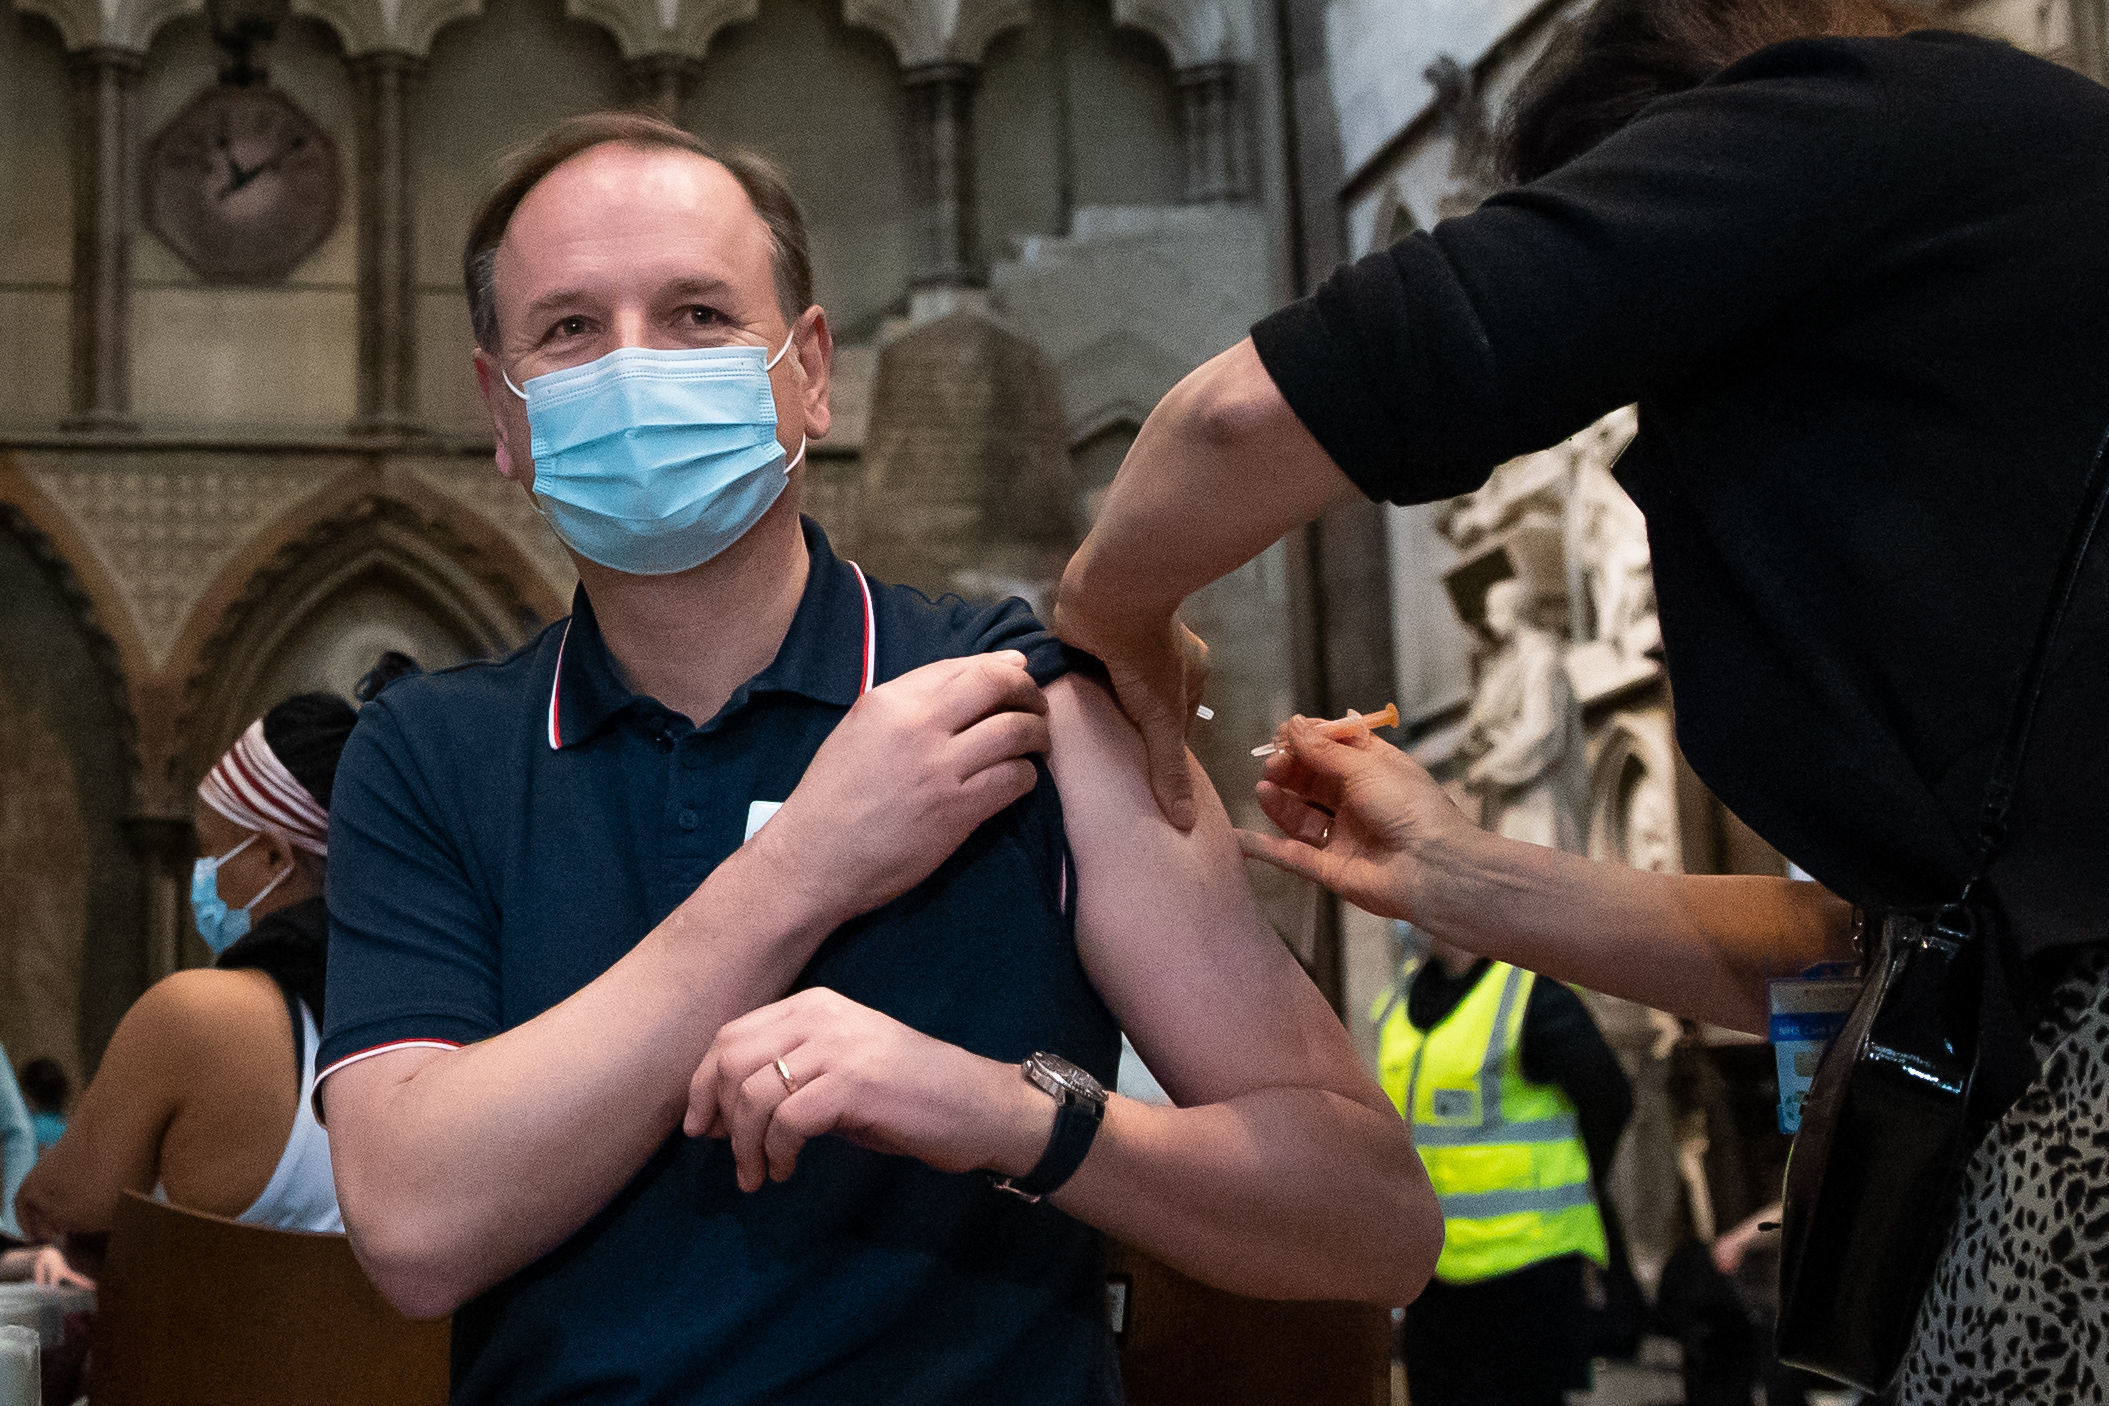 Dr Jan Maniera local GP and clinical director for south Westminster primary care network administers an injection of the Astra Zeneca coronavirus vaccine to Chief Executive of the National Health Service Sir Simon Stevens at Westminster Abbey, London.